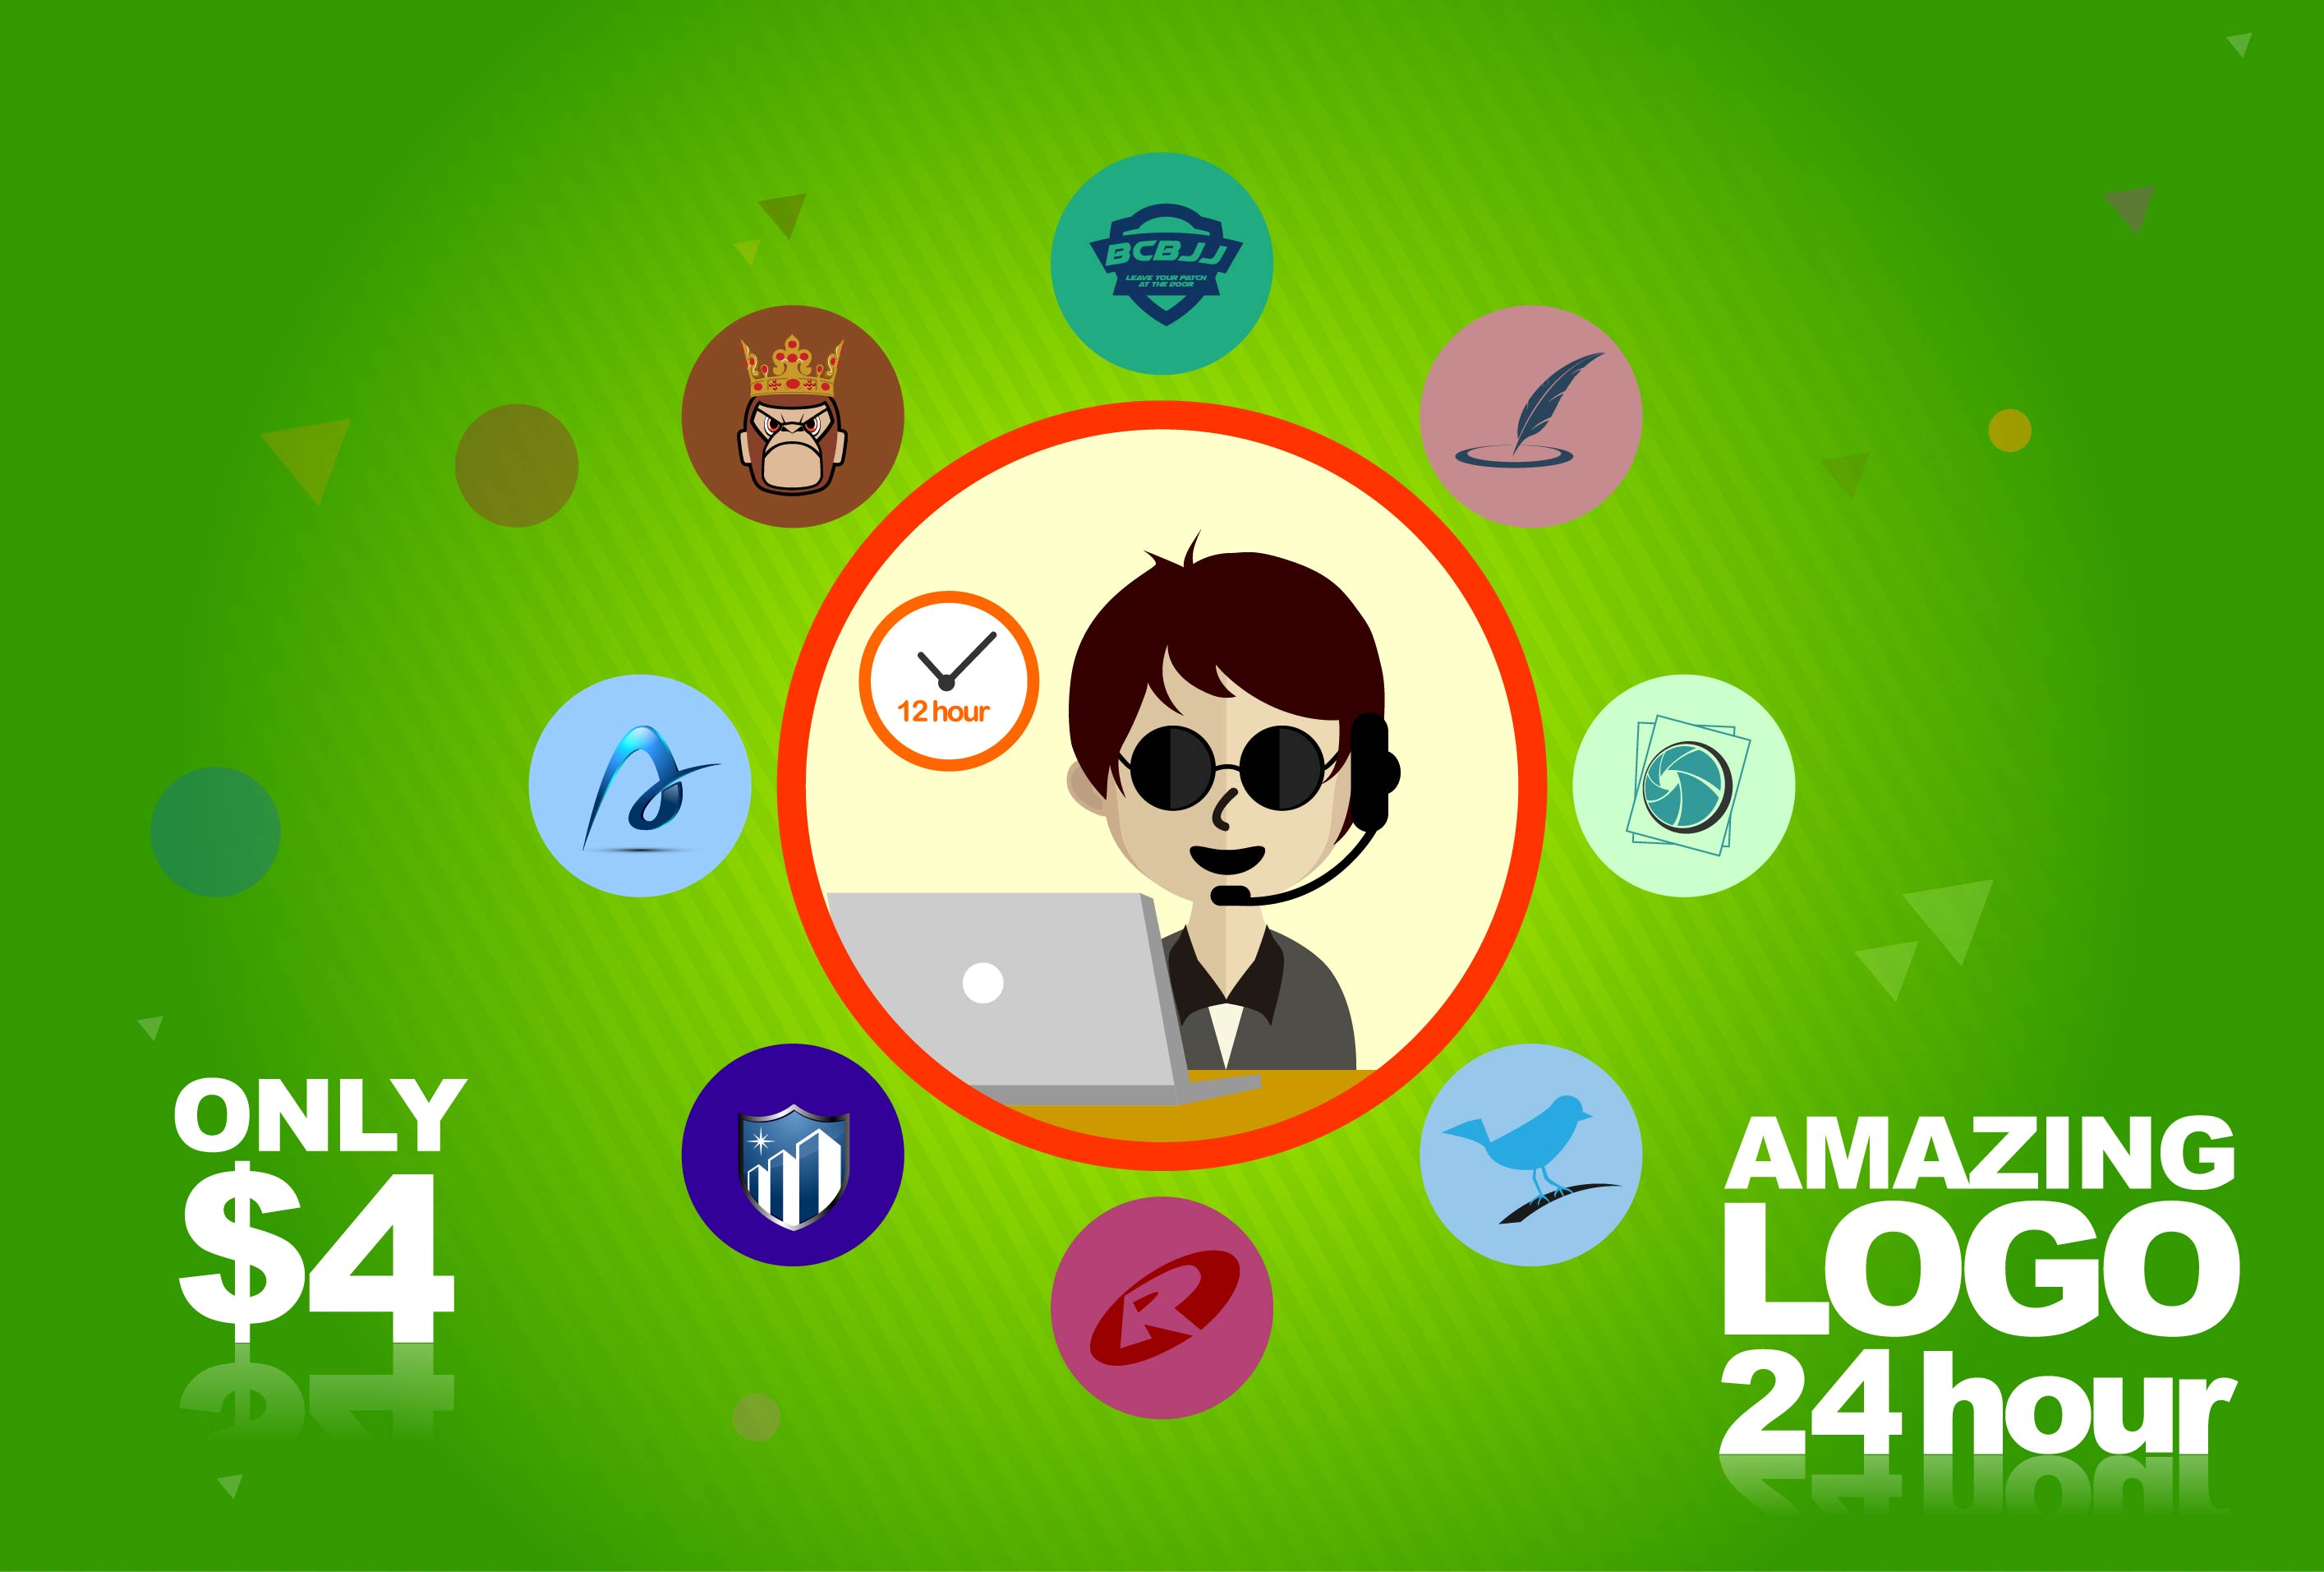 design AWESOME logo in 24 HOUR